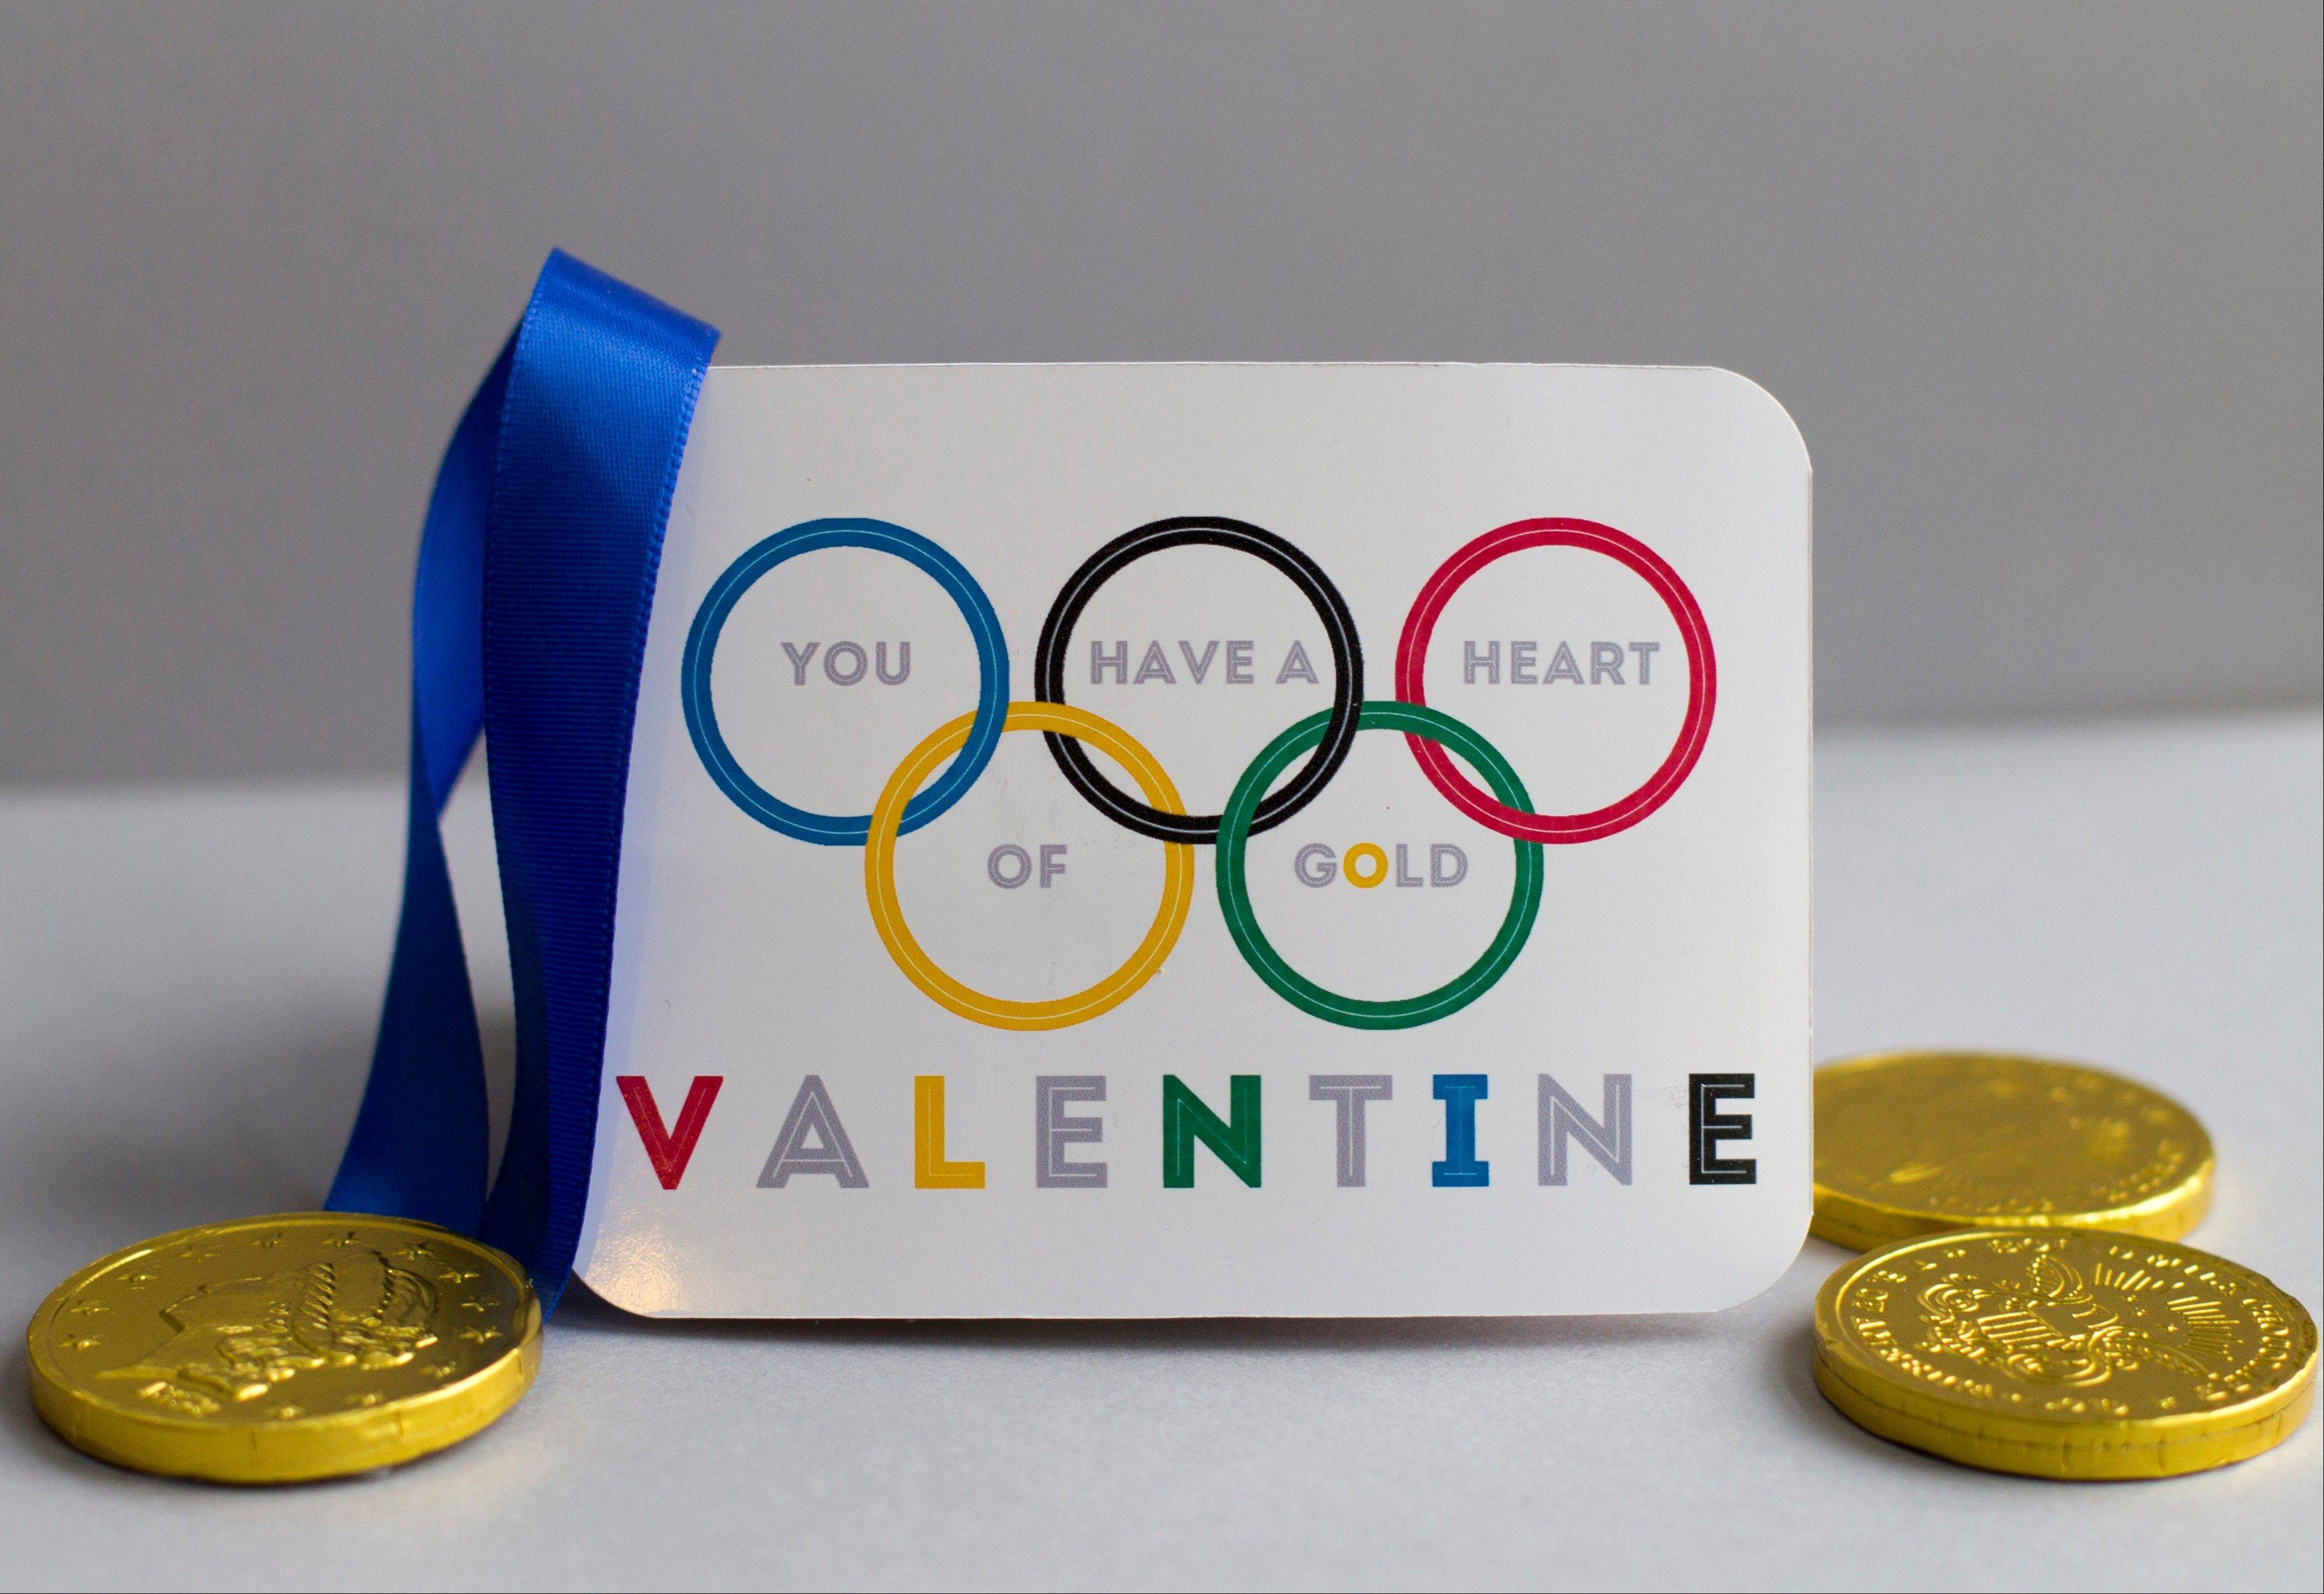 With Valentine's Day falling during the 2014 Winter Games, celebrate both with an Olympics-themed card and miniature gold medal.